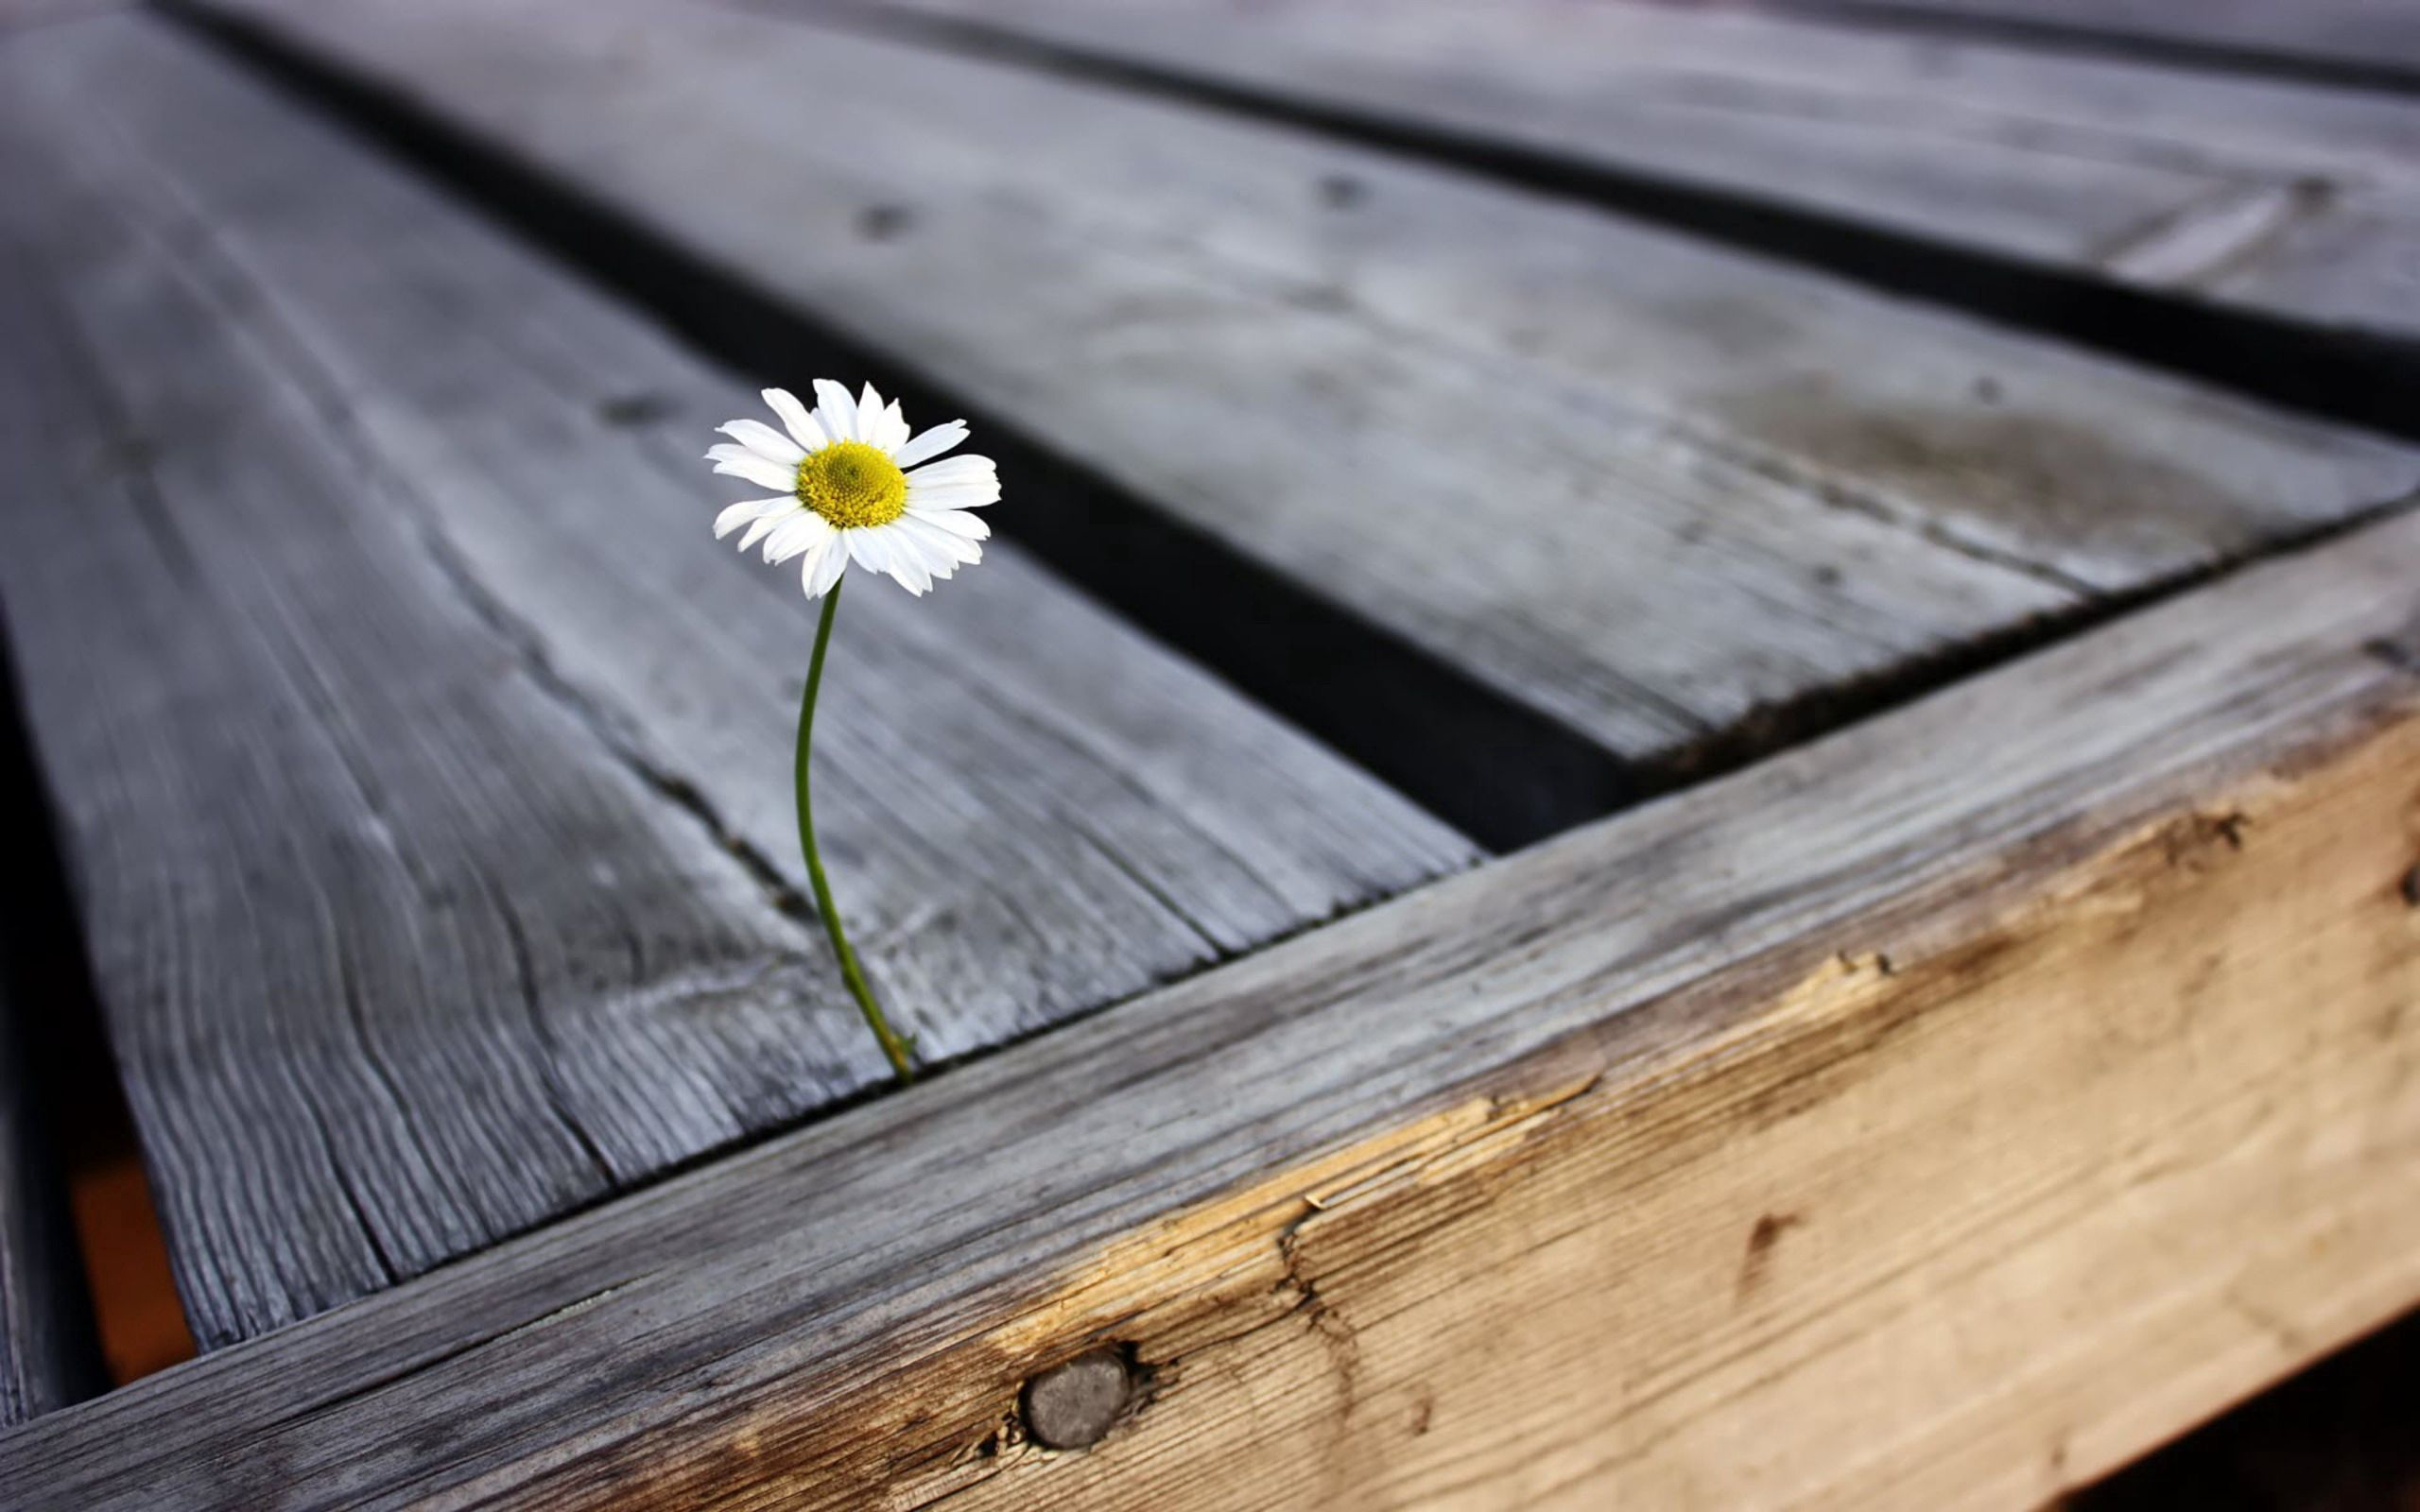 88506 download wallpaper Flowers, Chamomile, Camomile, Flower, Planks, Board, Nail screensavers and pictures for free